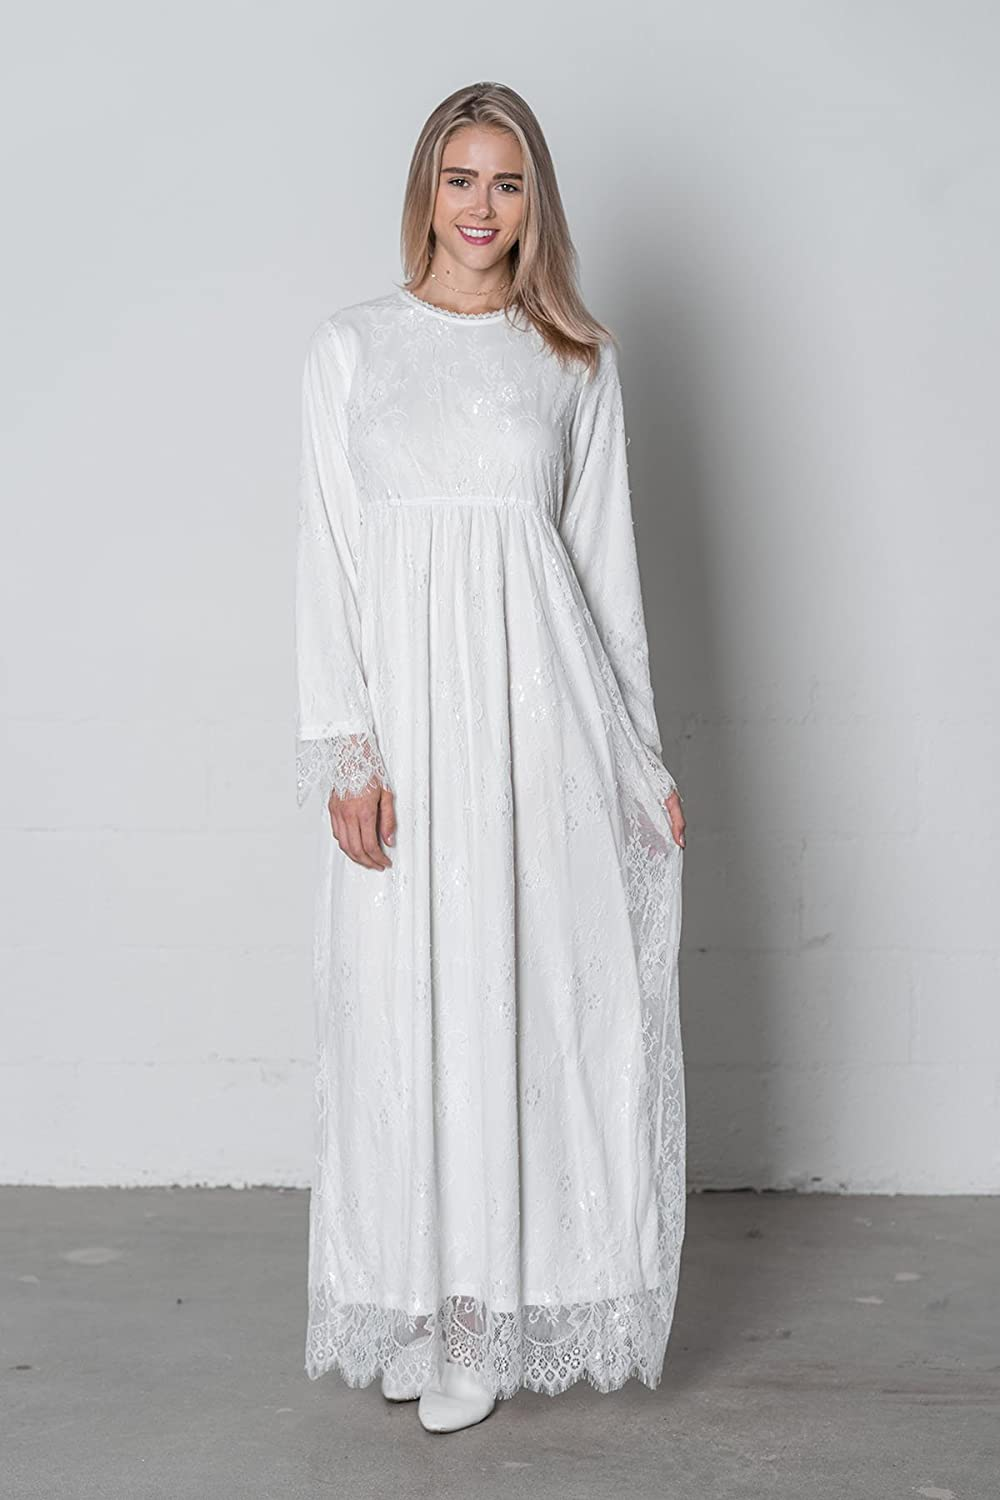 Hippie Dress | Long, Boho, Vintage, 70s ModWhite White Jasmine Dress $74.00 AT vintagedancer.com